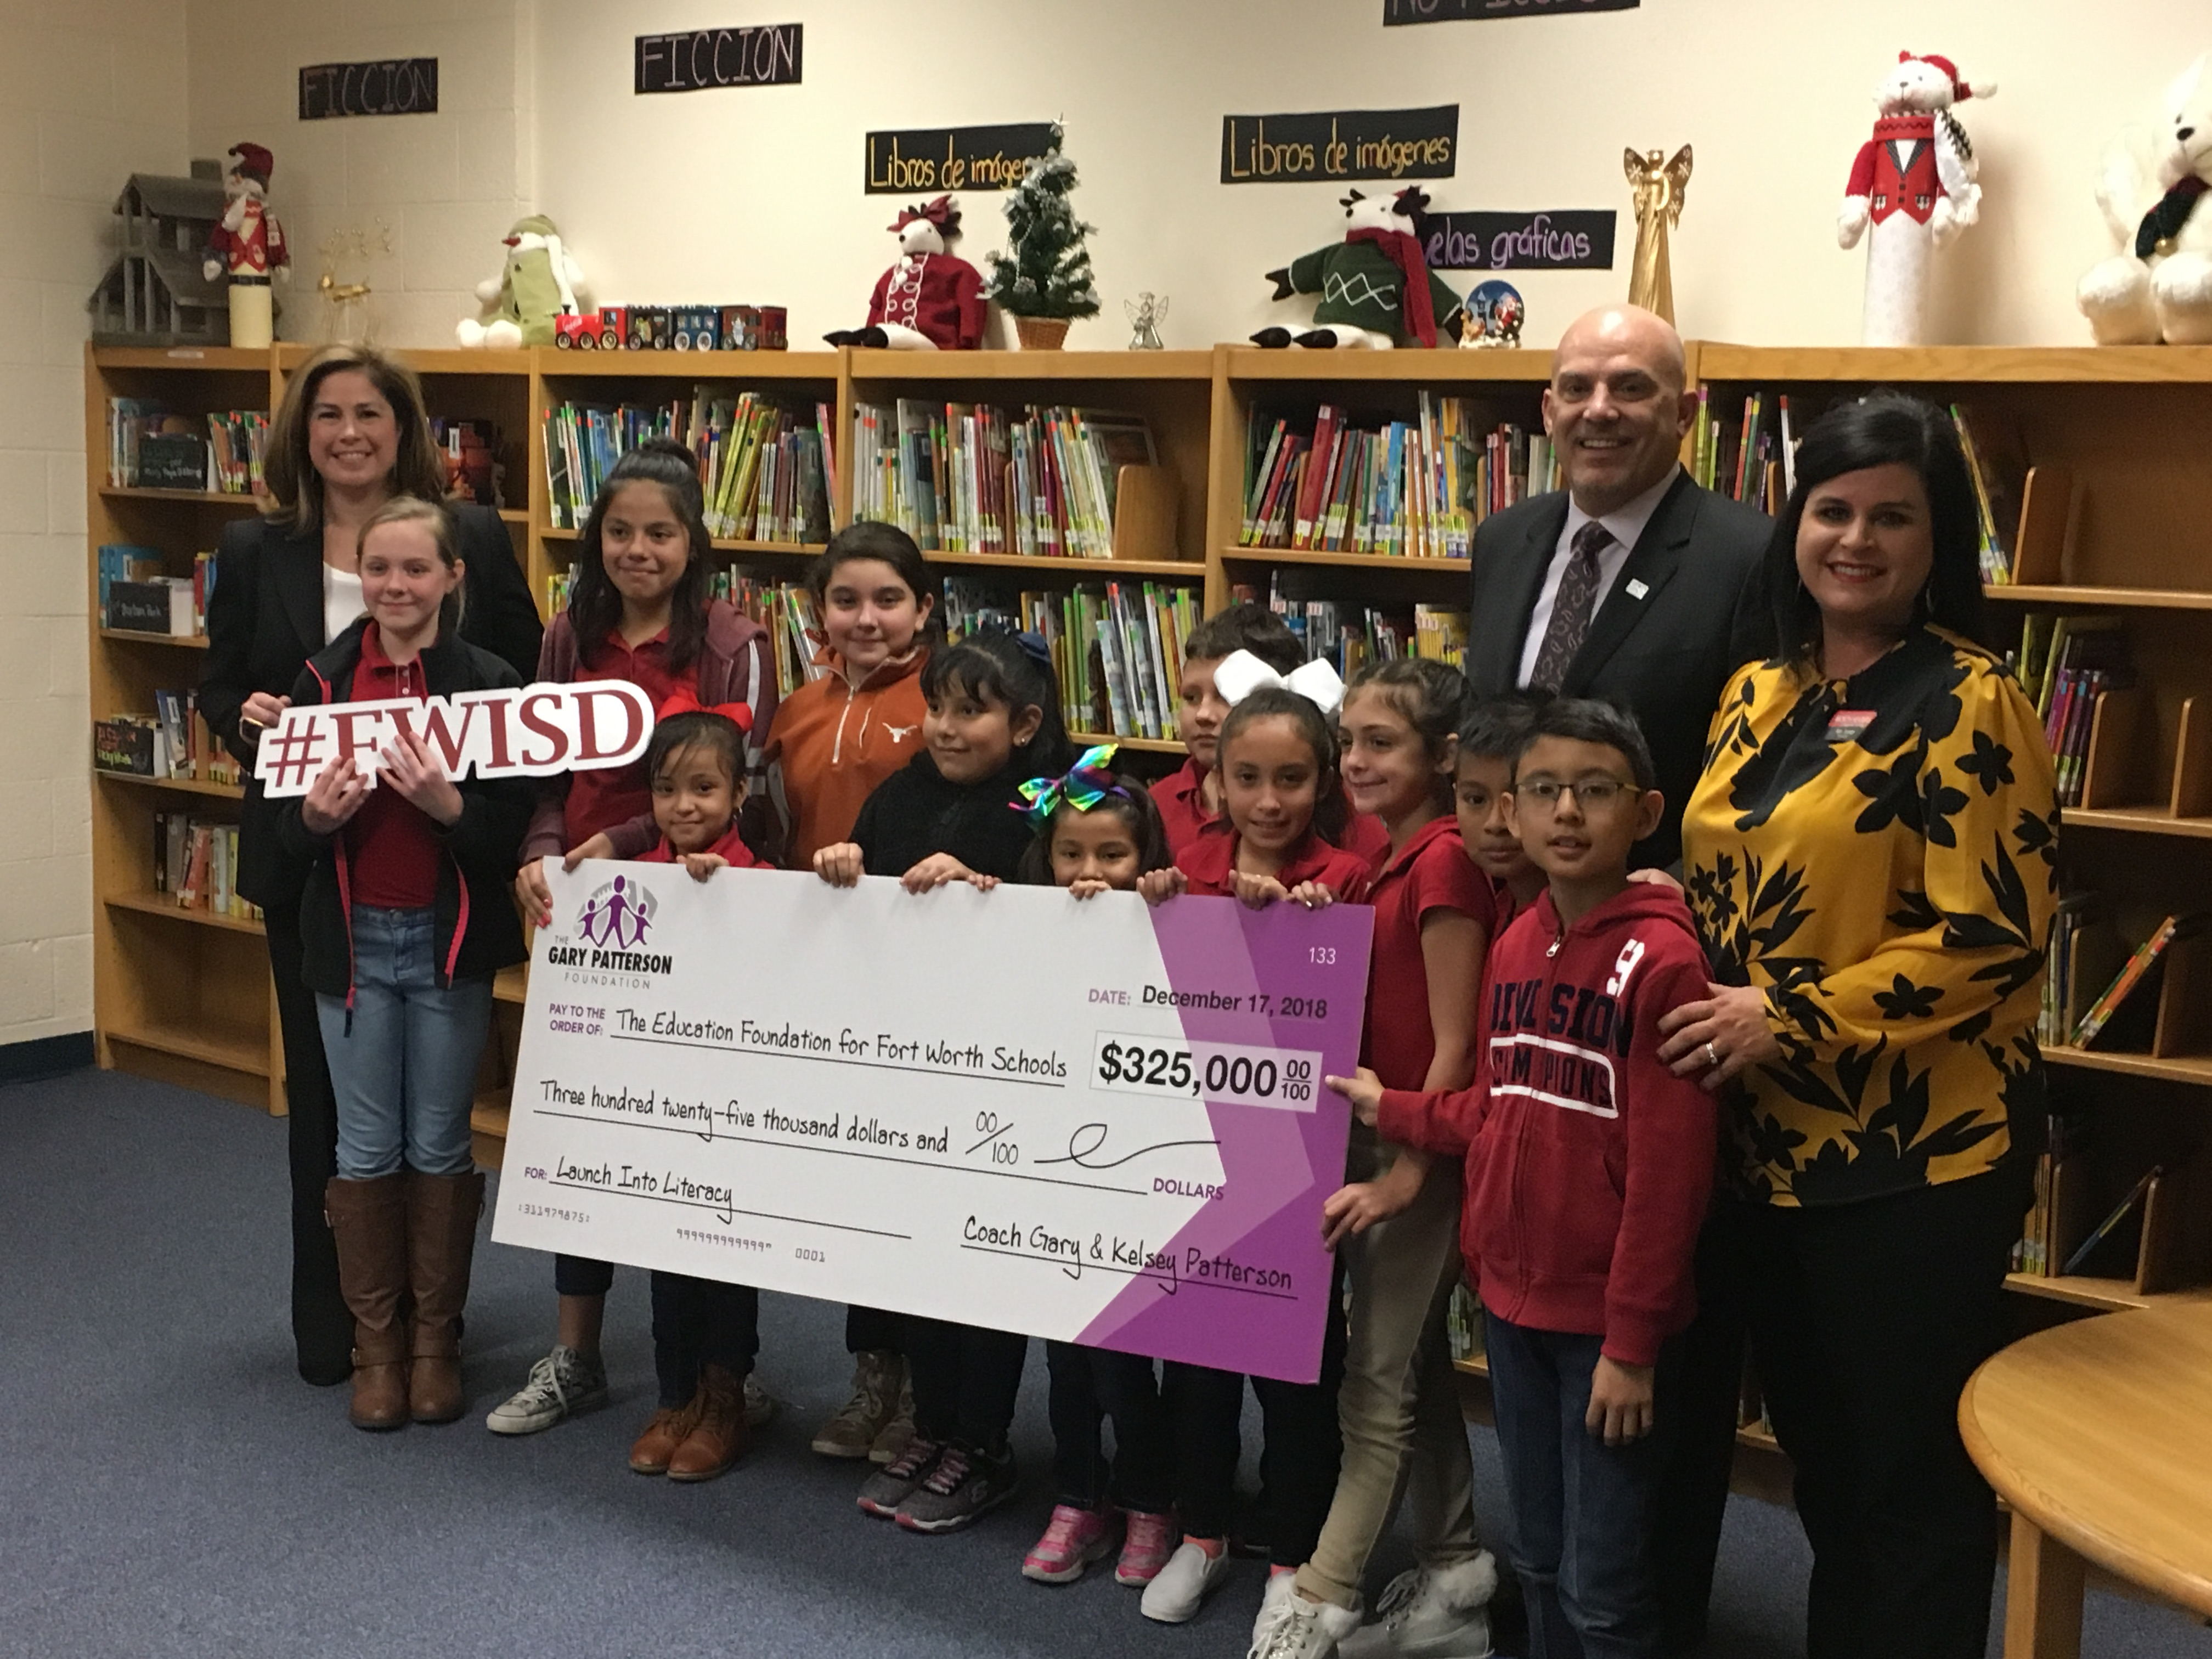 Gary Patterson Foundation awards $325,000 in grants to Fort Worth elementary schools